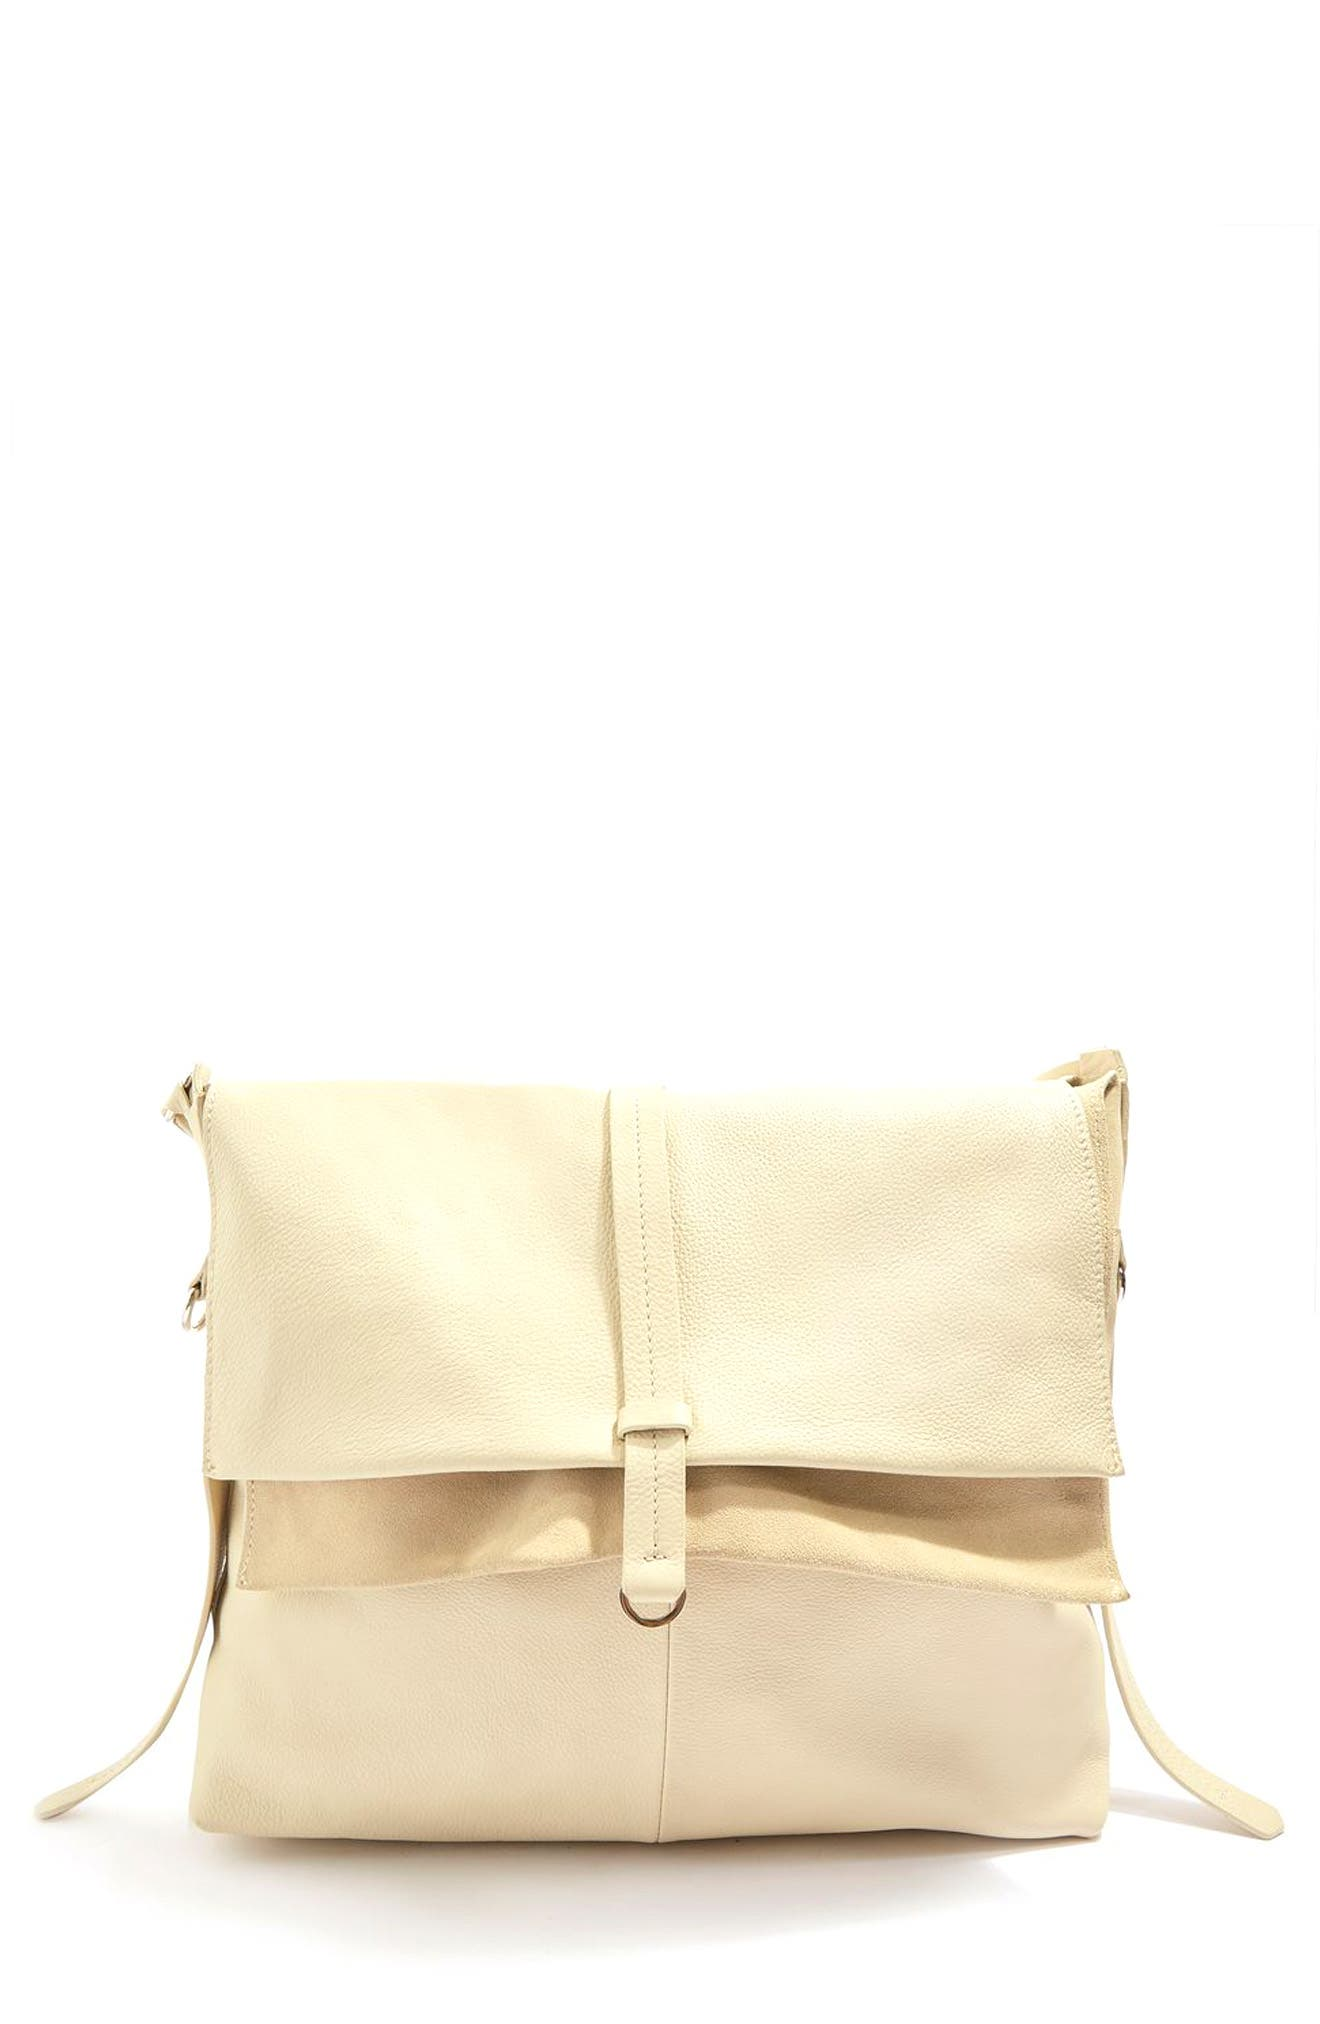 Topshop Premium Leather Hobo Bag